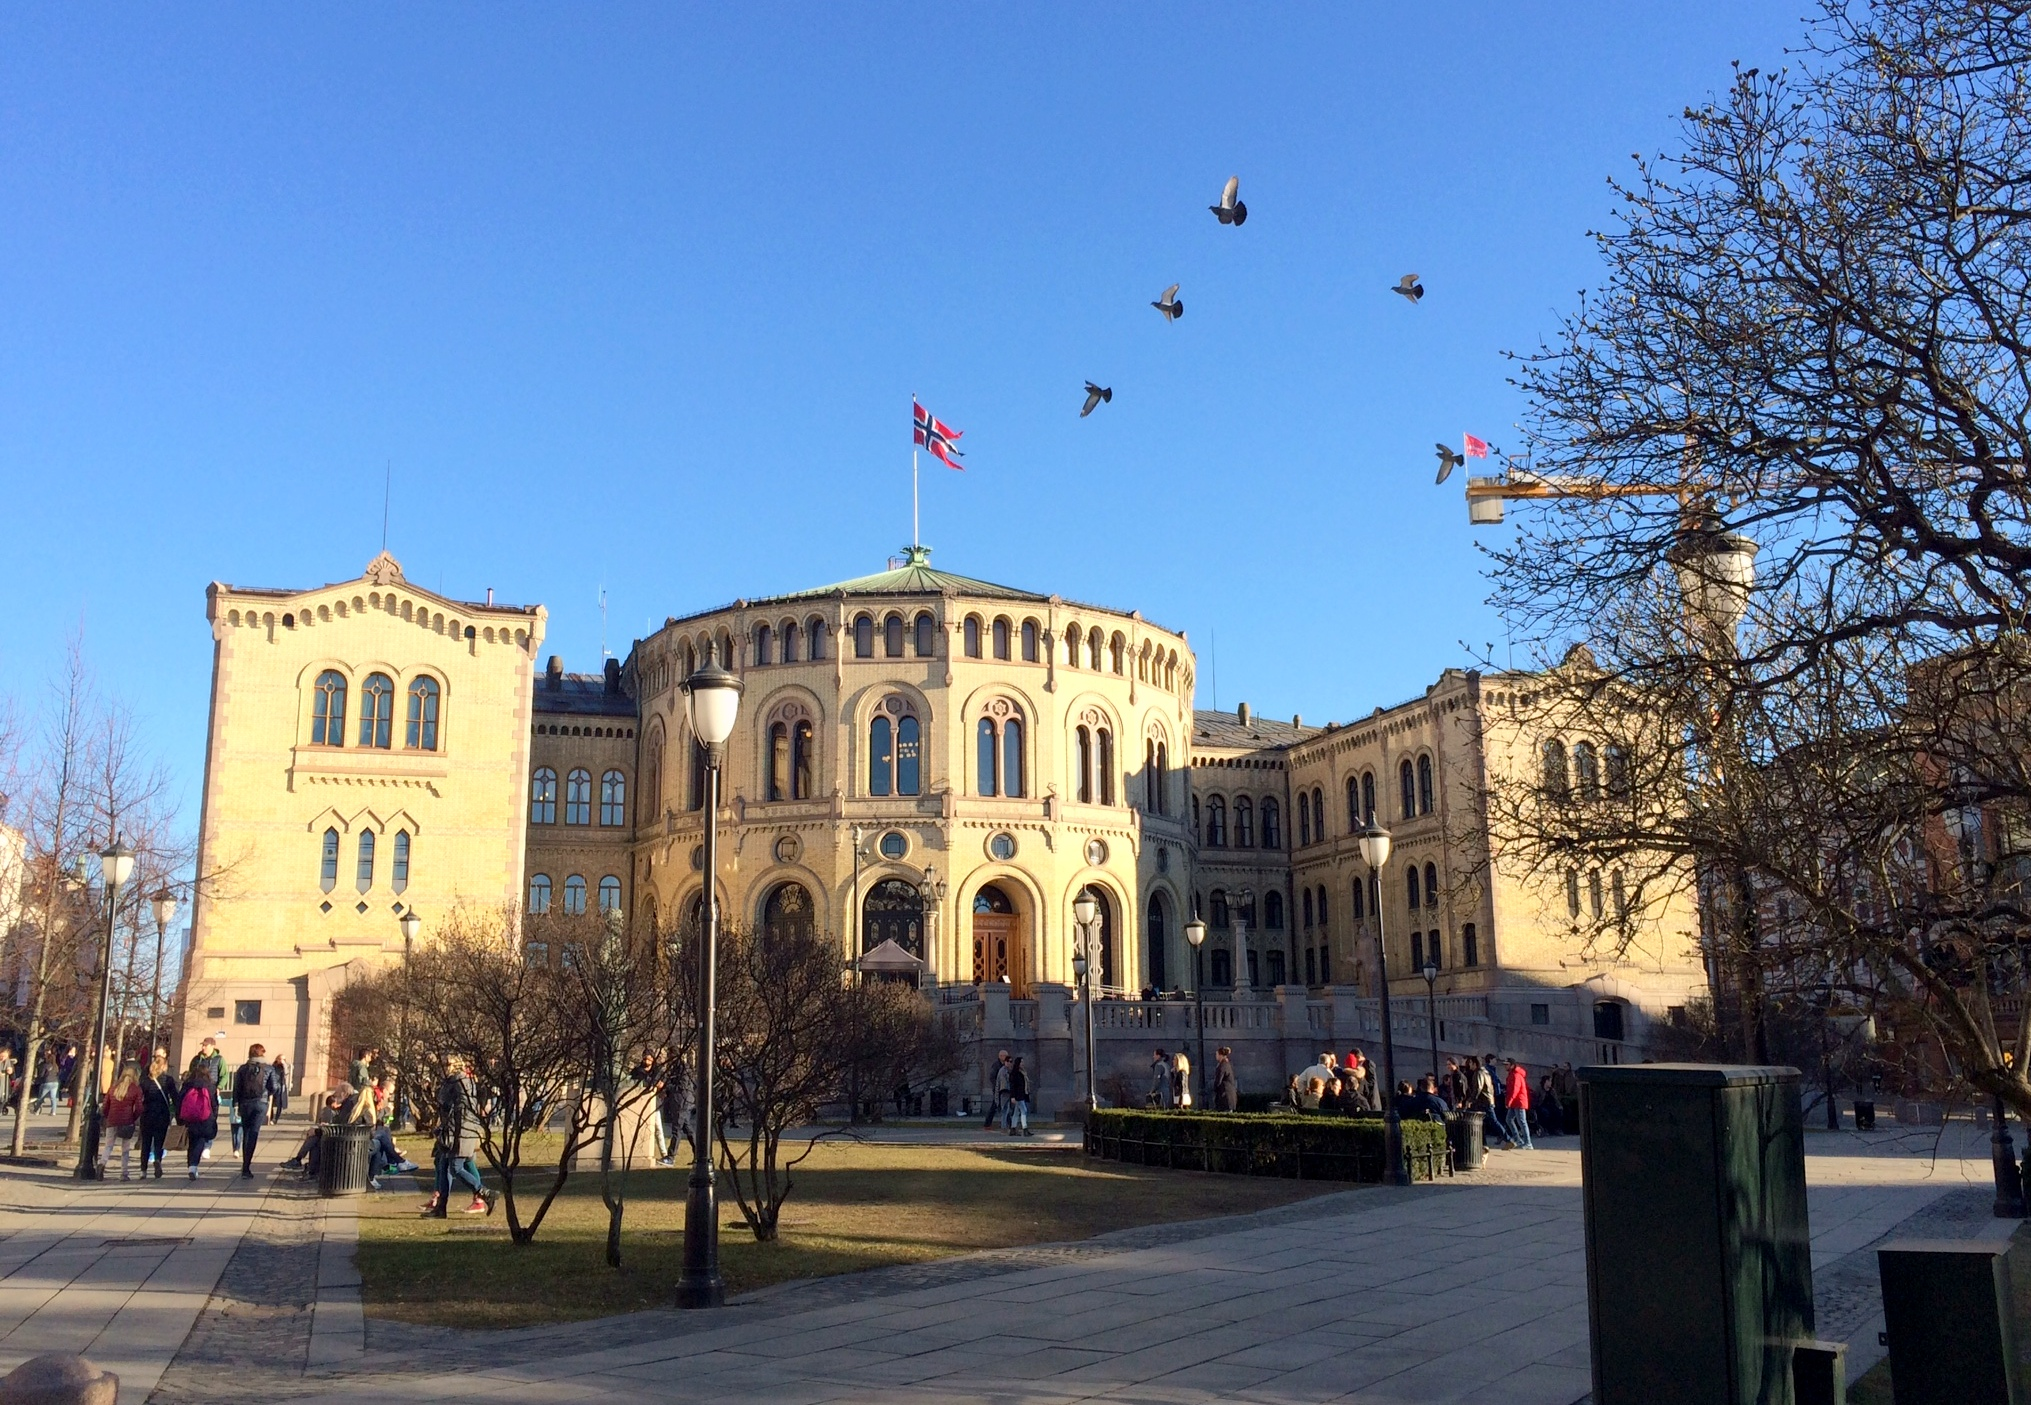 Tall girl's fashion // Visiting Stortinget, Norway's parliament